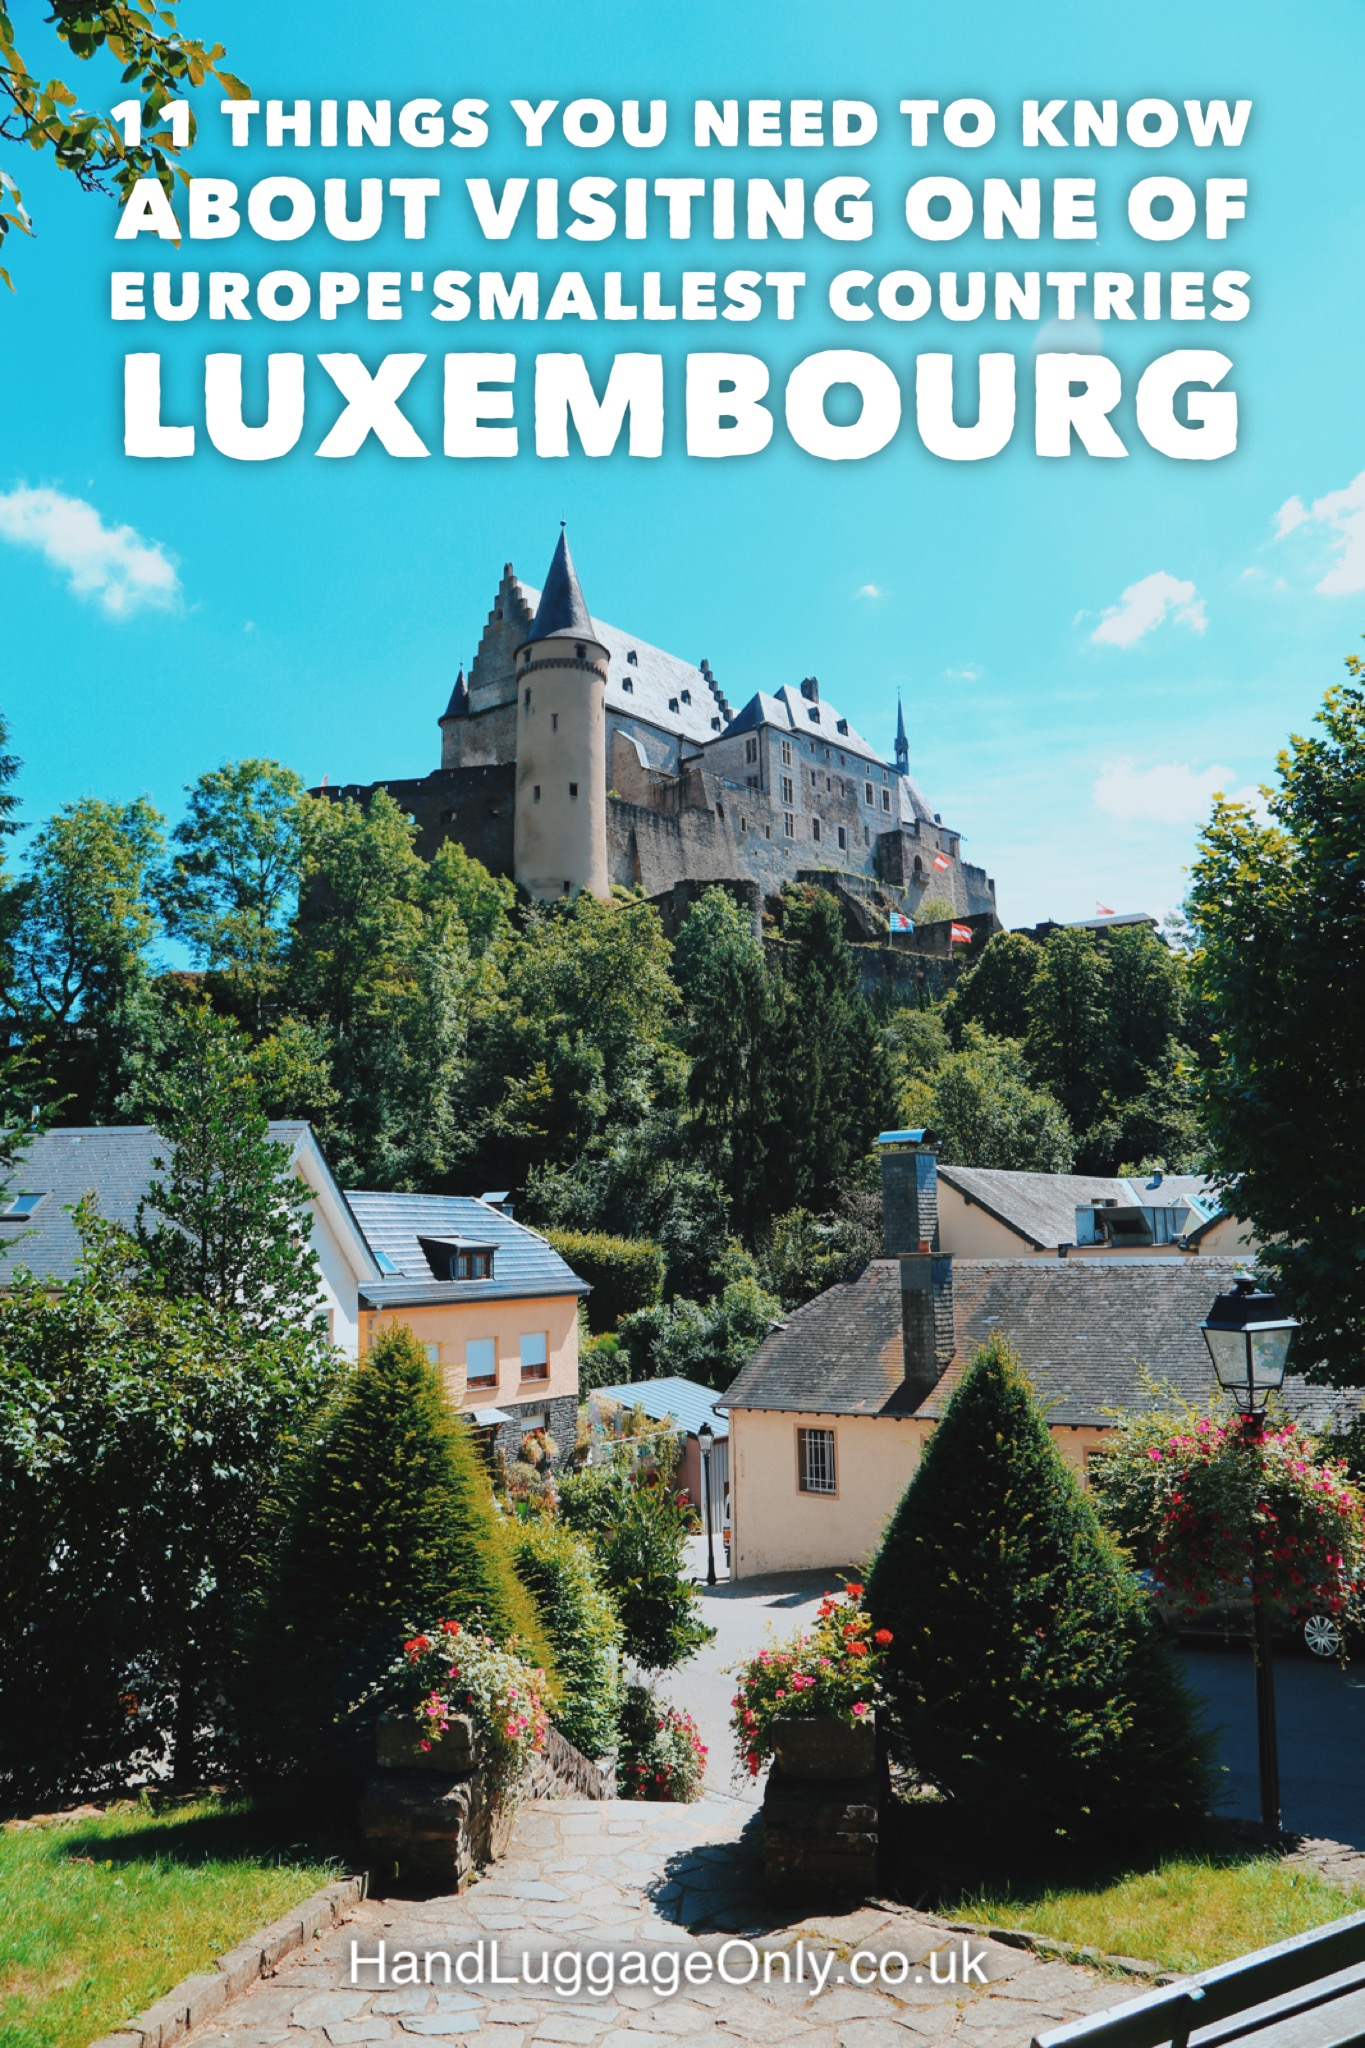 11 Things You Need To Know About Visiting Luxembourg – One of Europe's Smallest Countries!